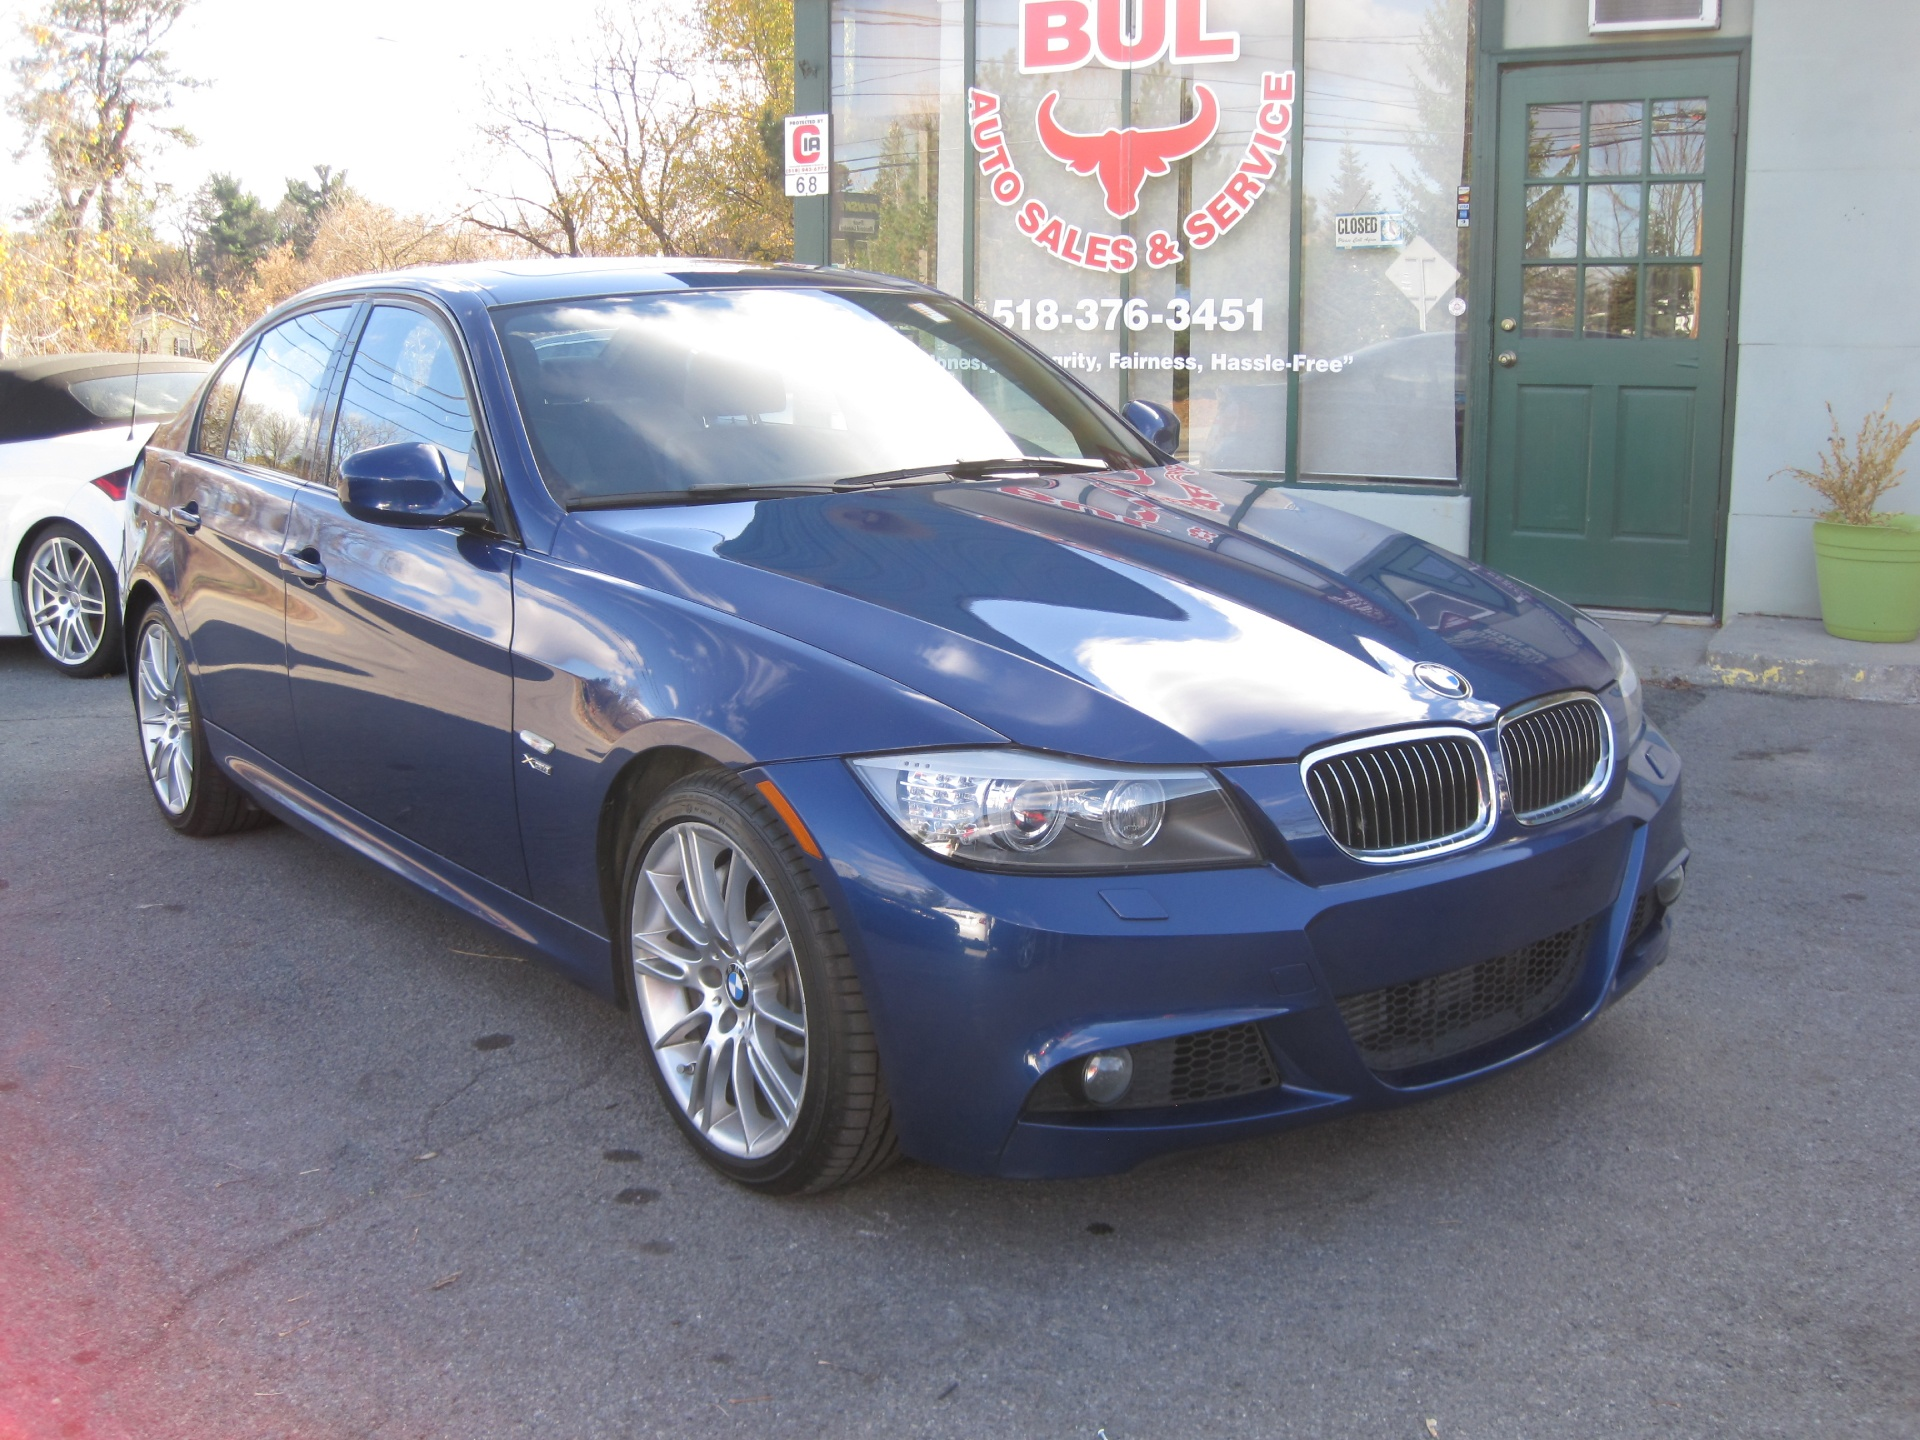 2010 bmw 3 series 335i xdrive super rare 6 speed manual m sport n54 rh bulautosales com Nissan Used Cars for Sale Audi Used Cars for Sale